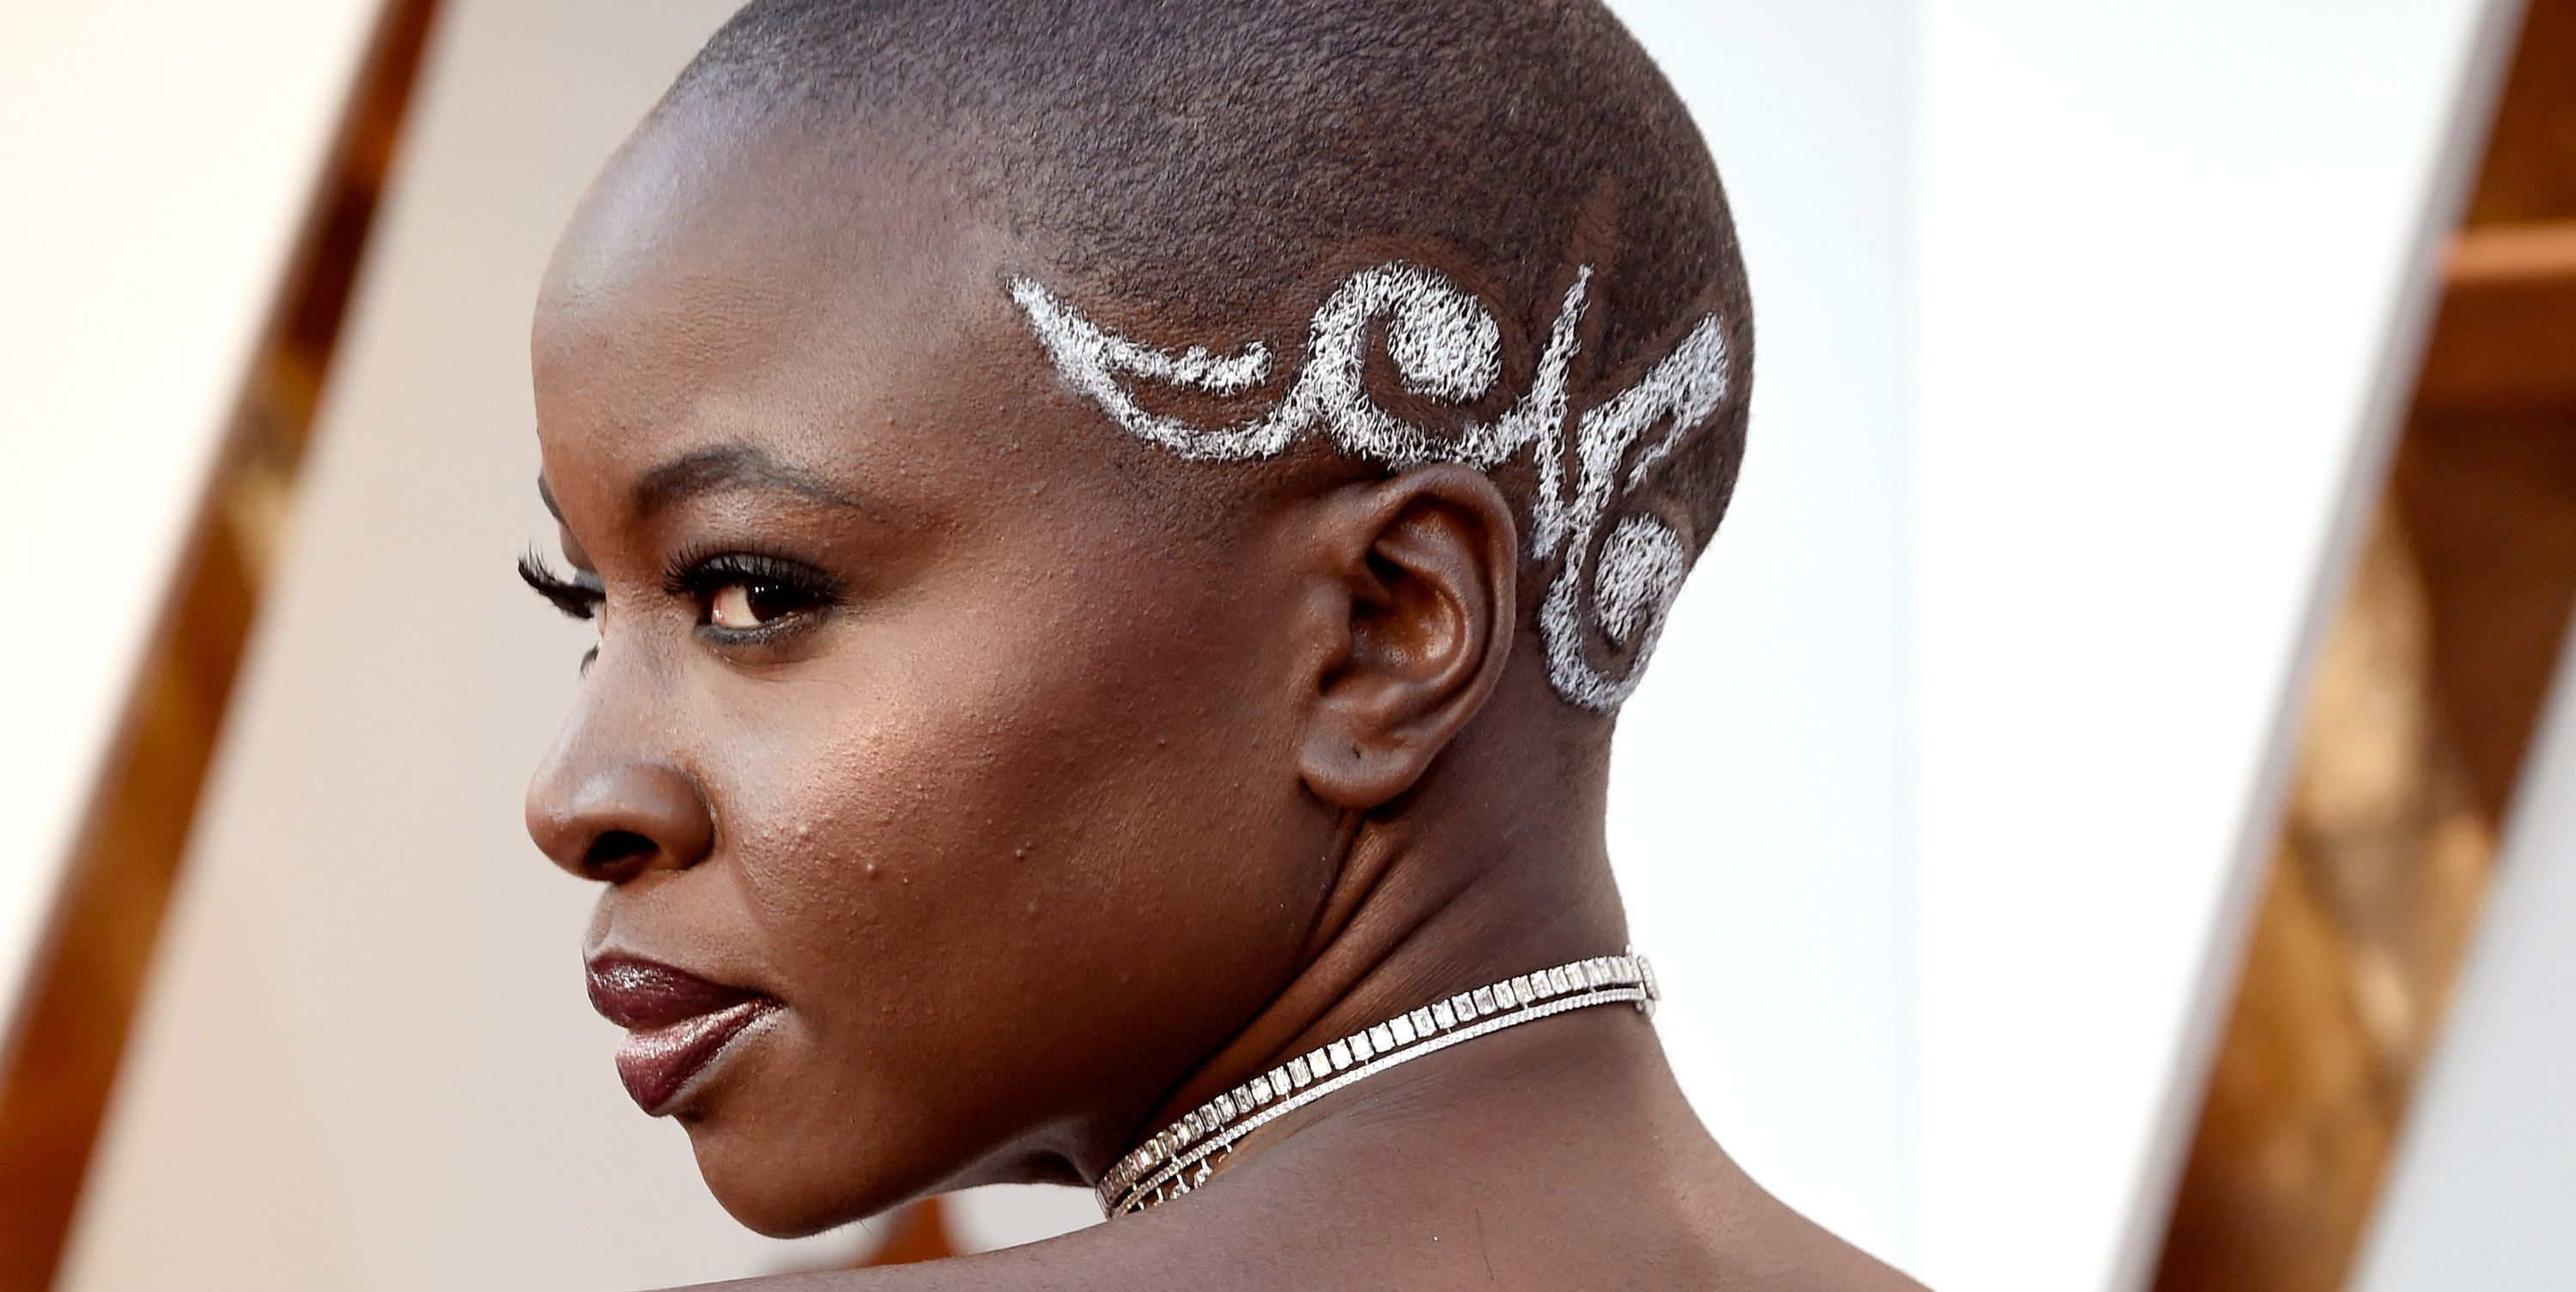 Oscars 2018 Best Makeup And Hairstyles Academy Awards Celebrity Beauty Looks